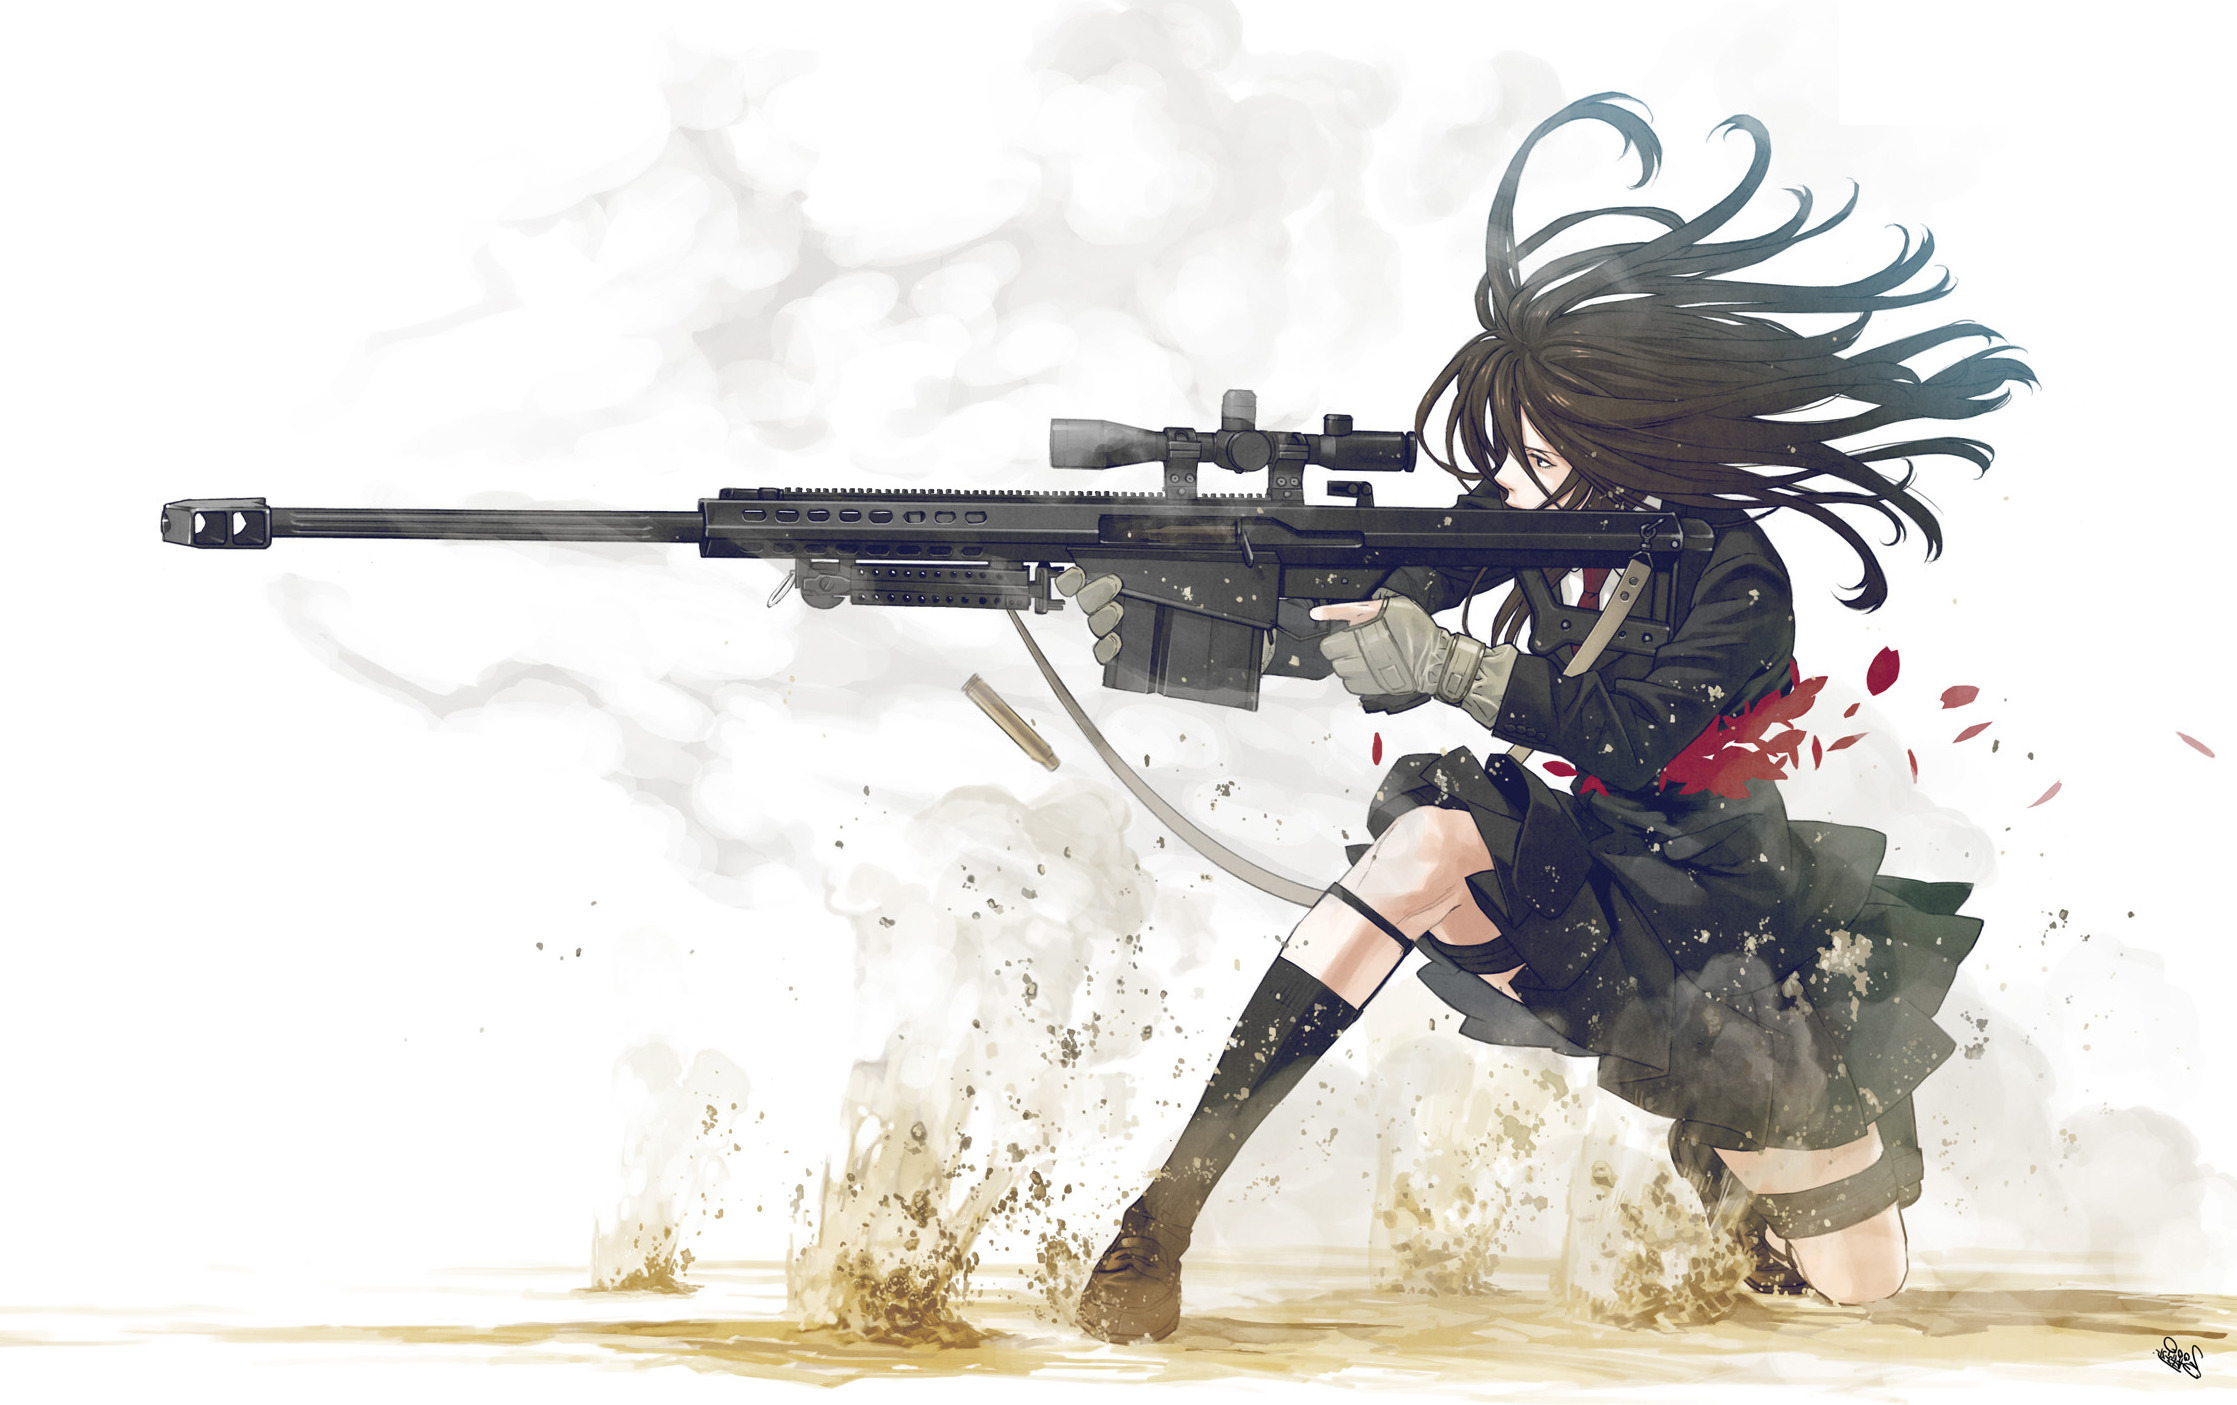 anime Anime Girls Women Weapon Barrett 50 Cal Skirt School 2237x1405